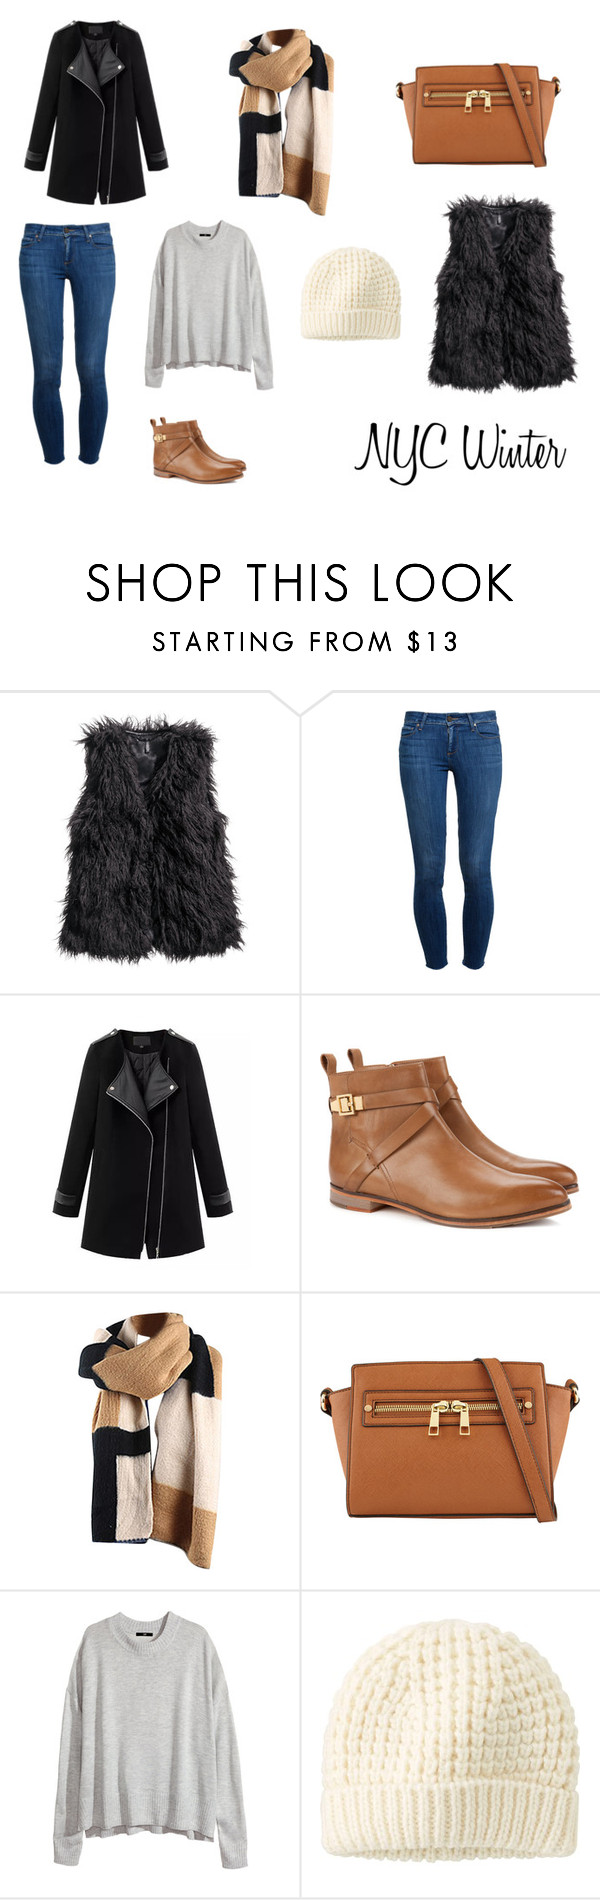 """""""NYC Winter"""" by iwanttotravel ❤ liked on Polyvore featuring H&M, Paige Denim, Chicnova Fashion, Ted Baker, ALDO and Uniqlo"""